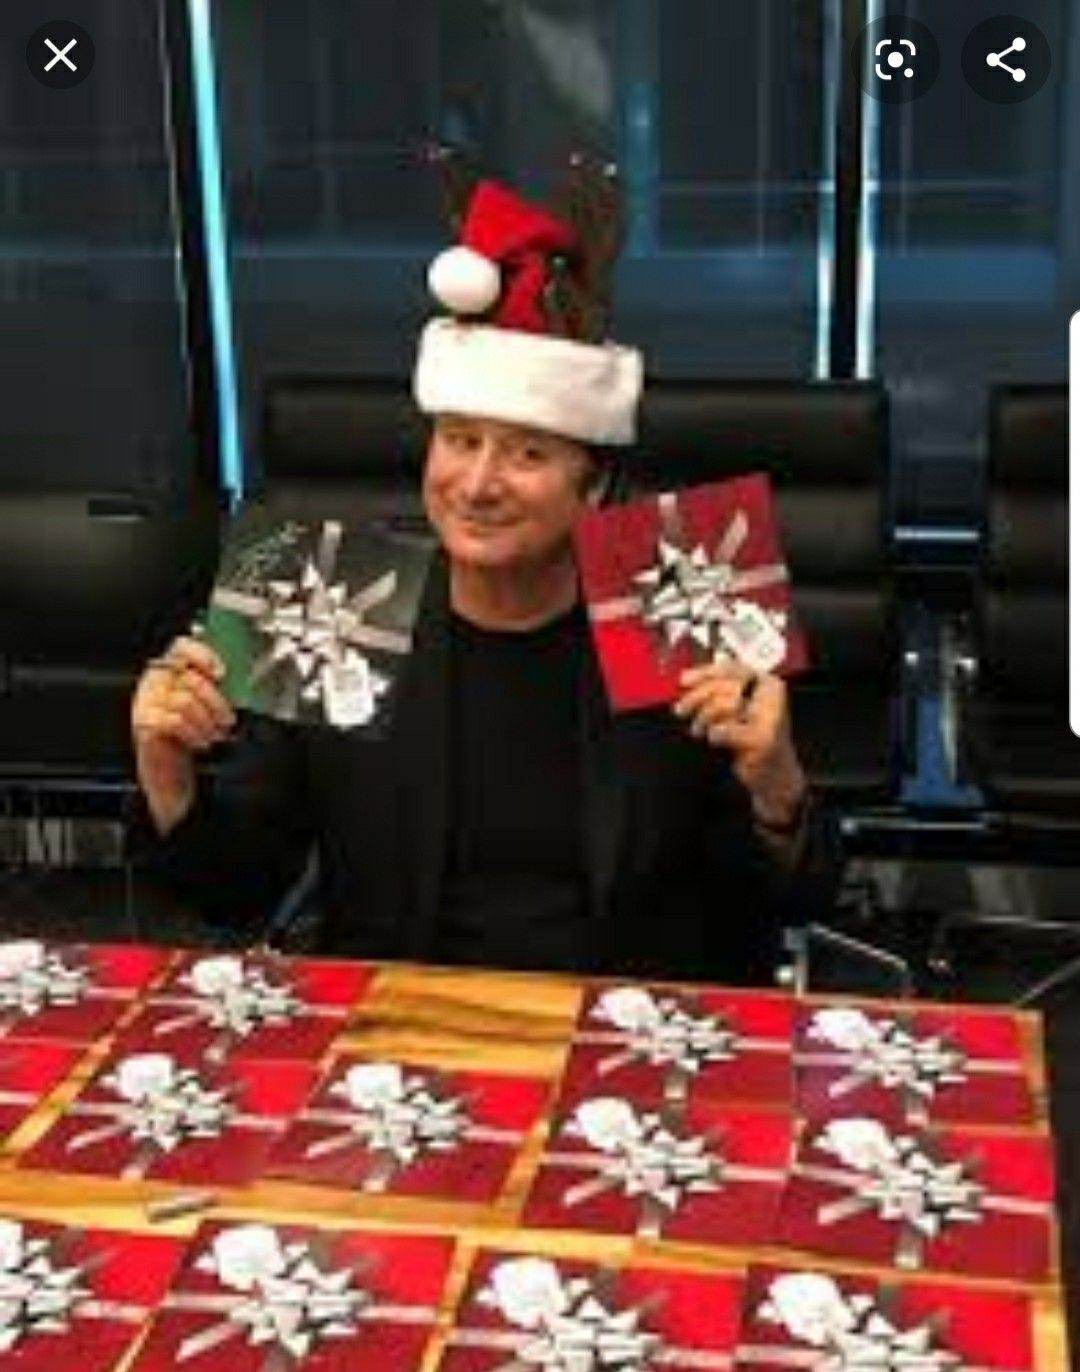 Steve Perry Christmas 2020 Pin by Lisa Johnson Hanes on All Things Steve Perry in 2020